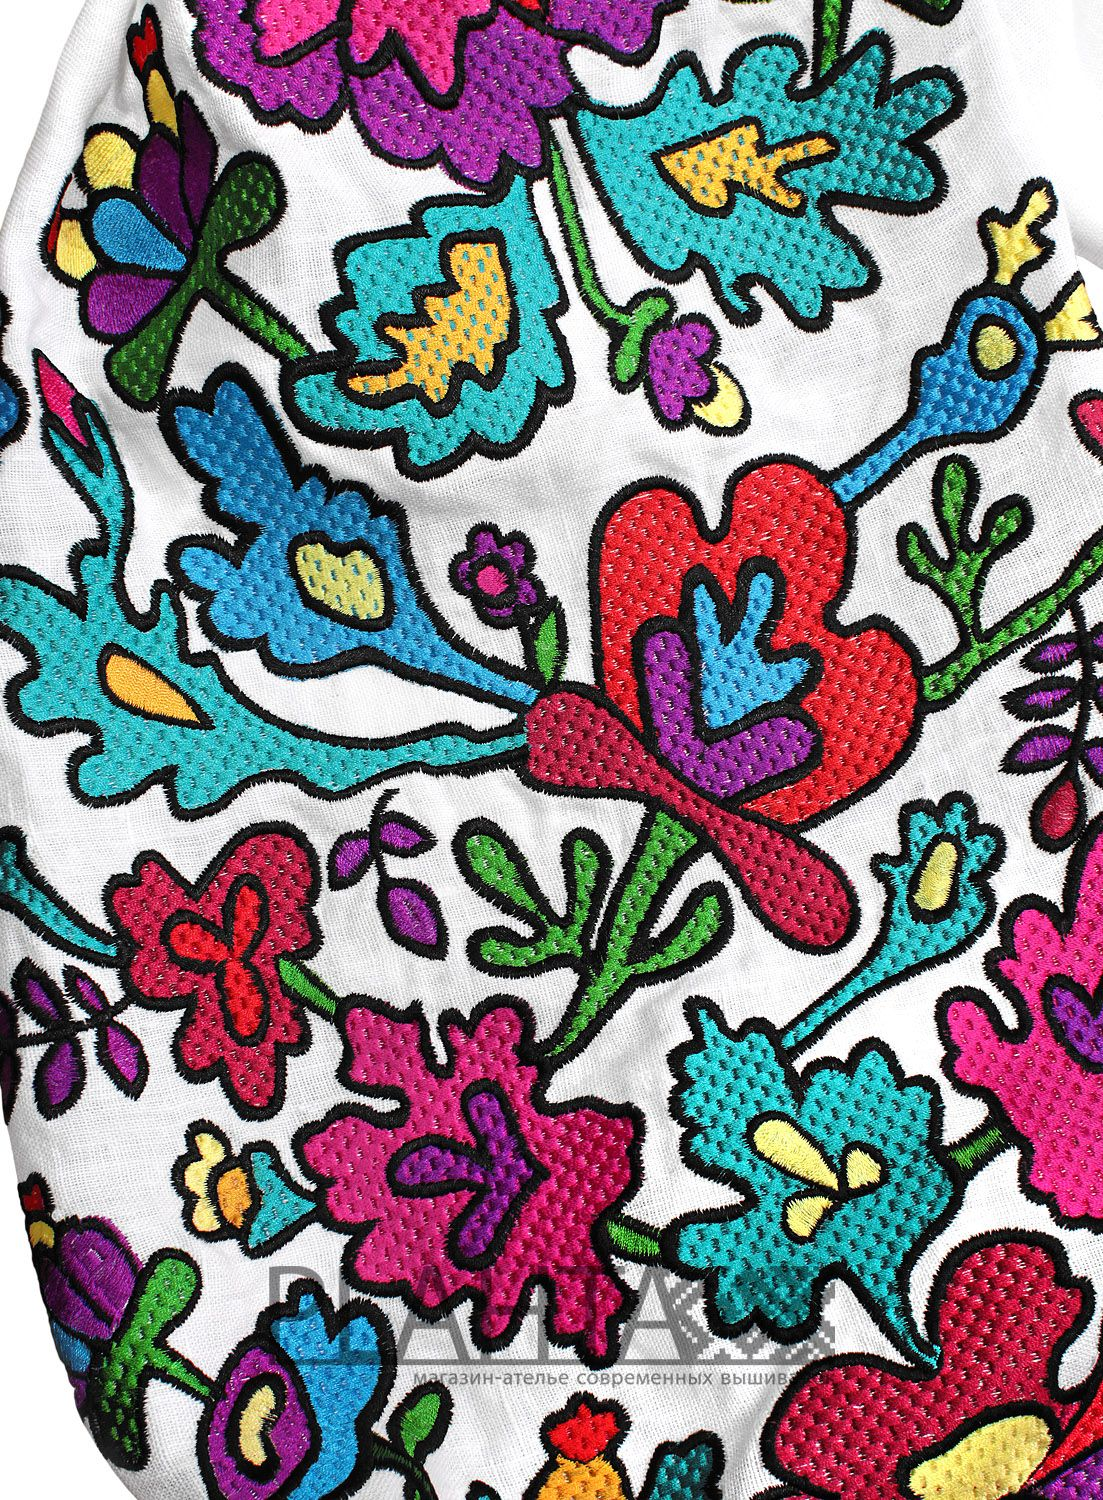 Платье-вышиванка Butterfly Embroidery 00dca41881760